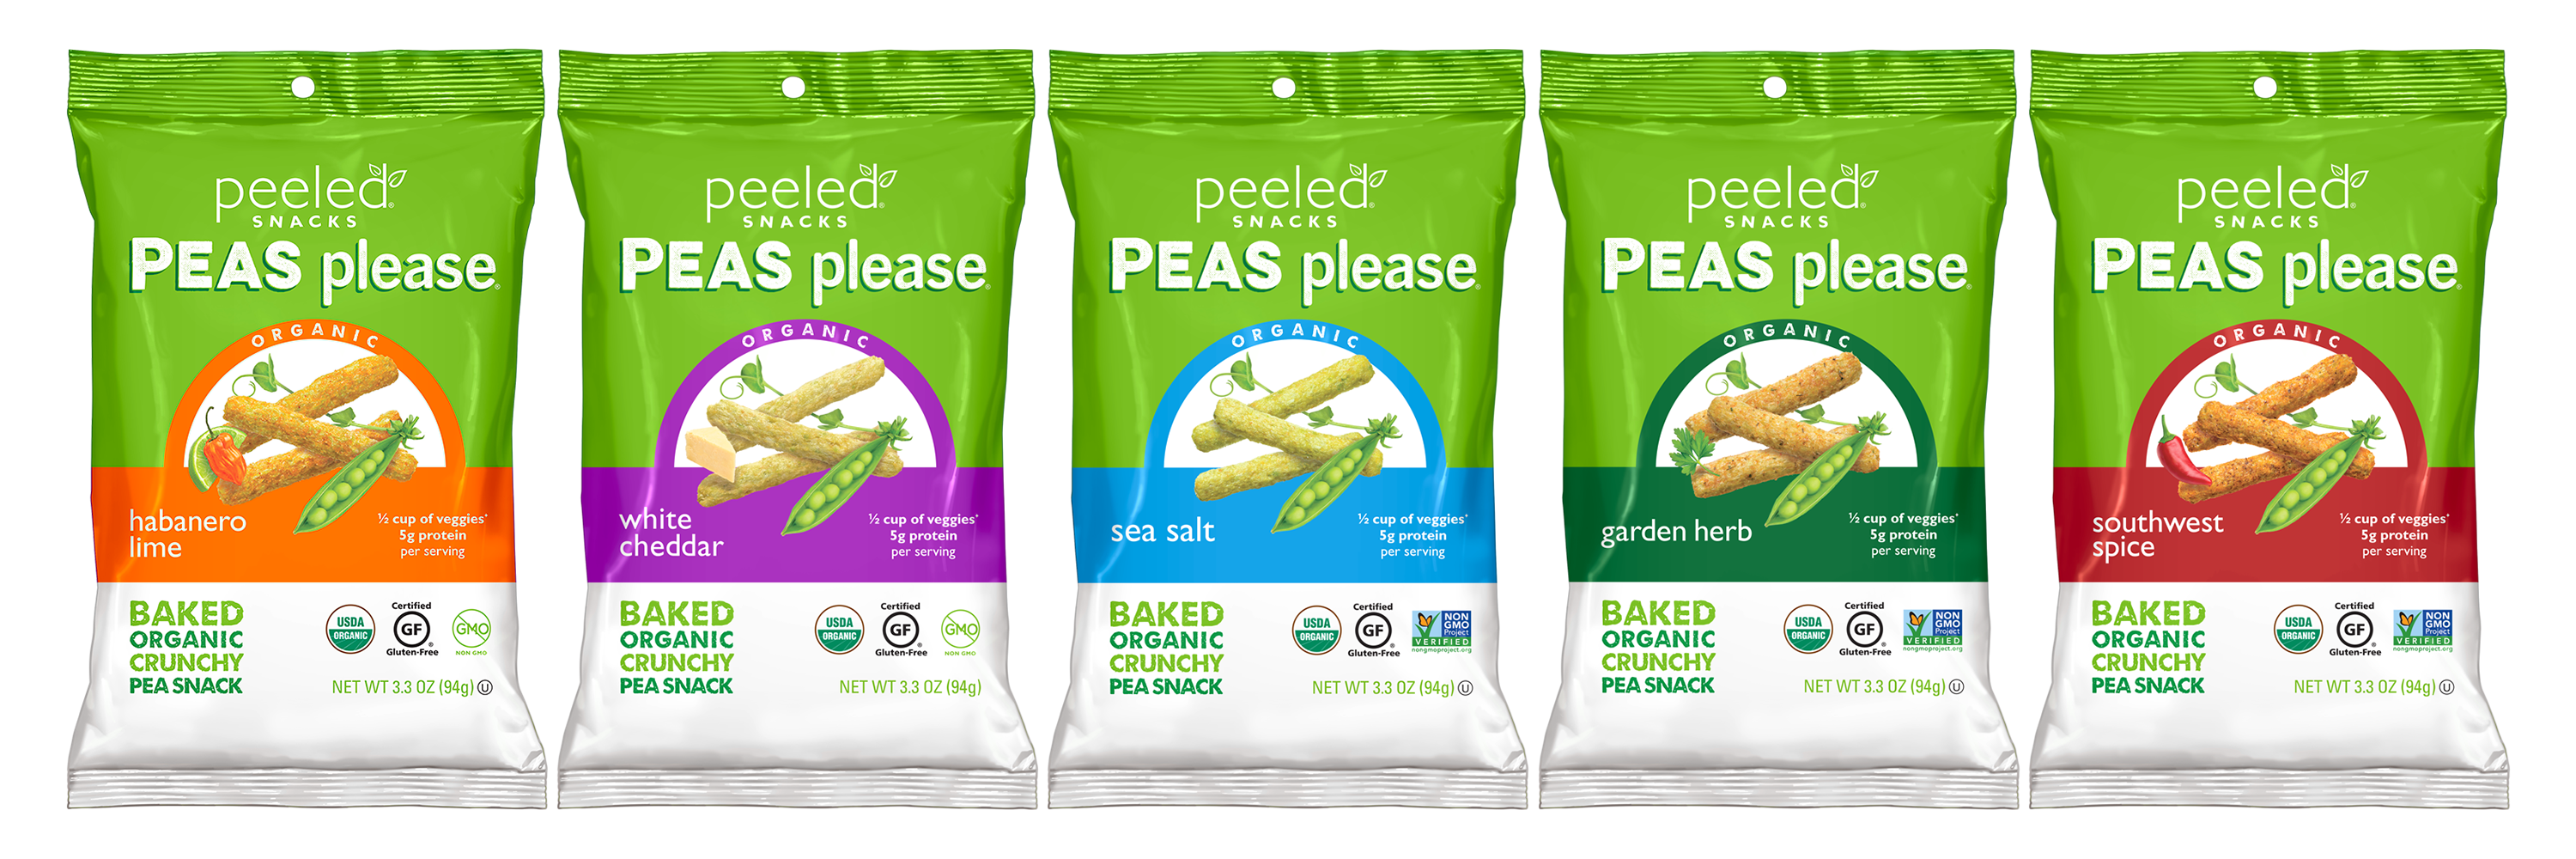 Peas Please Group Shot